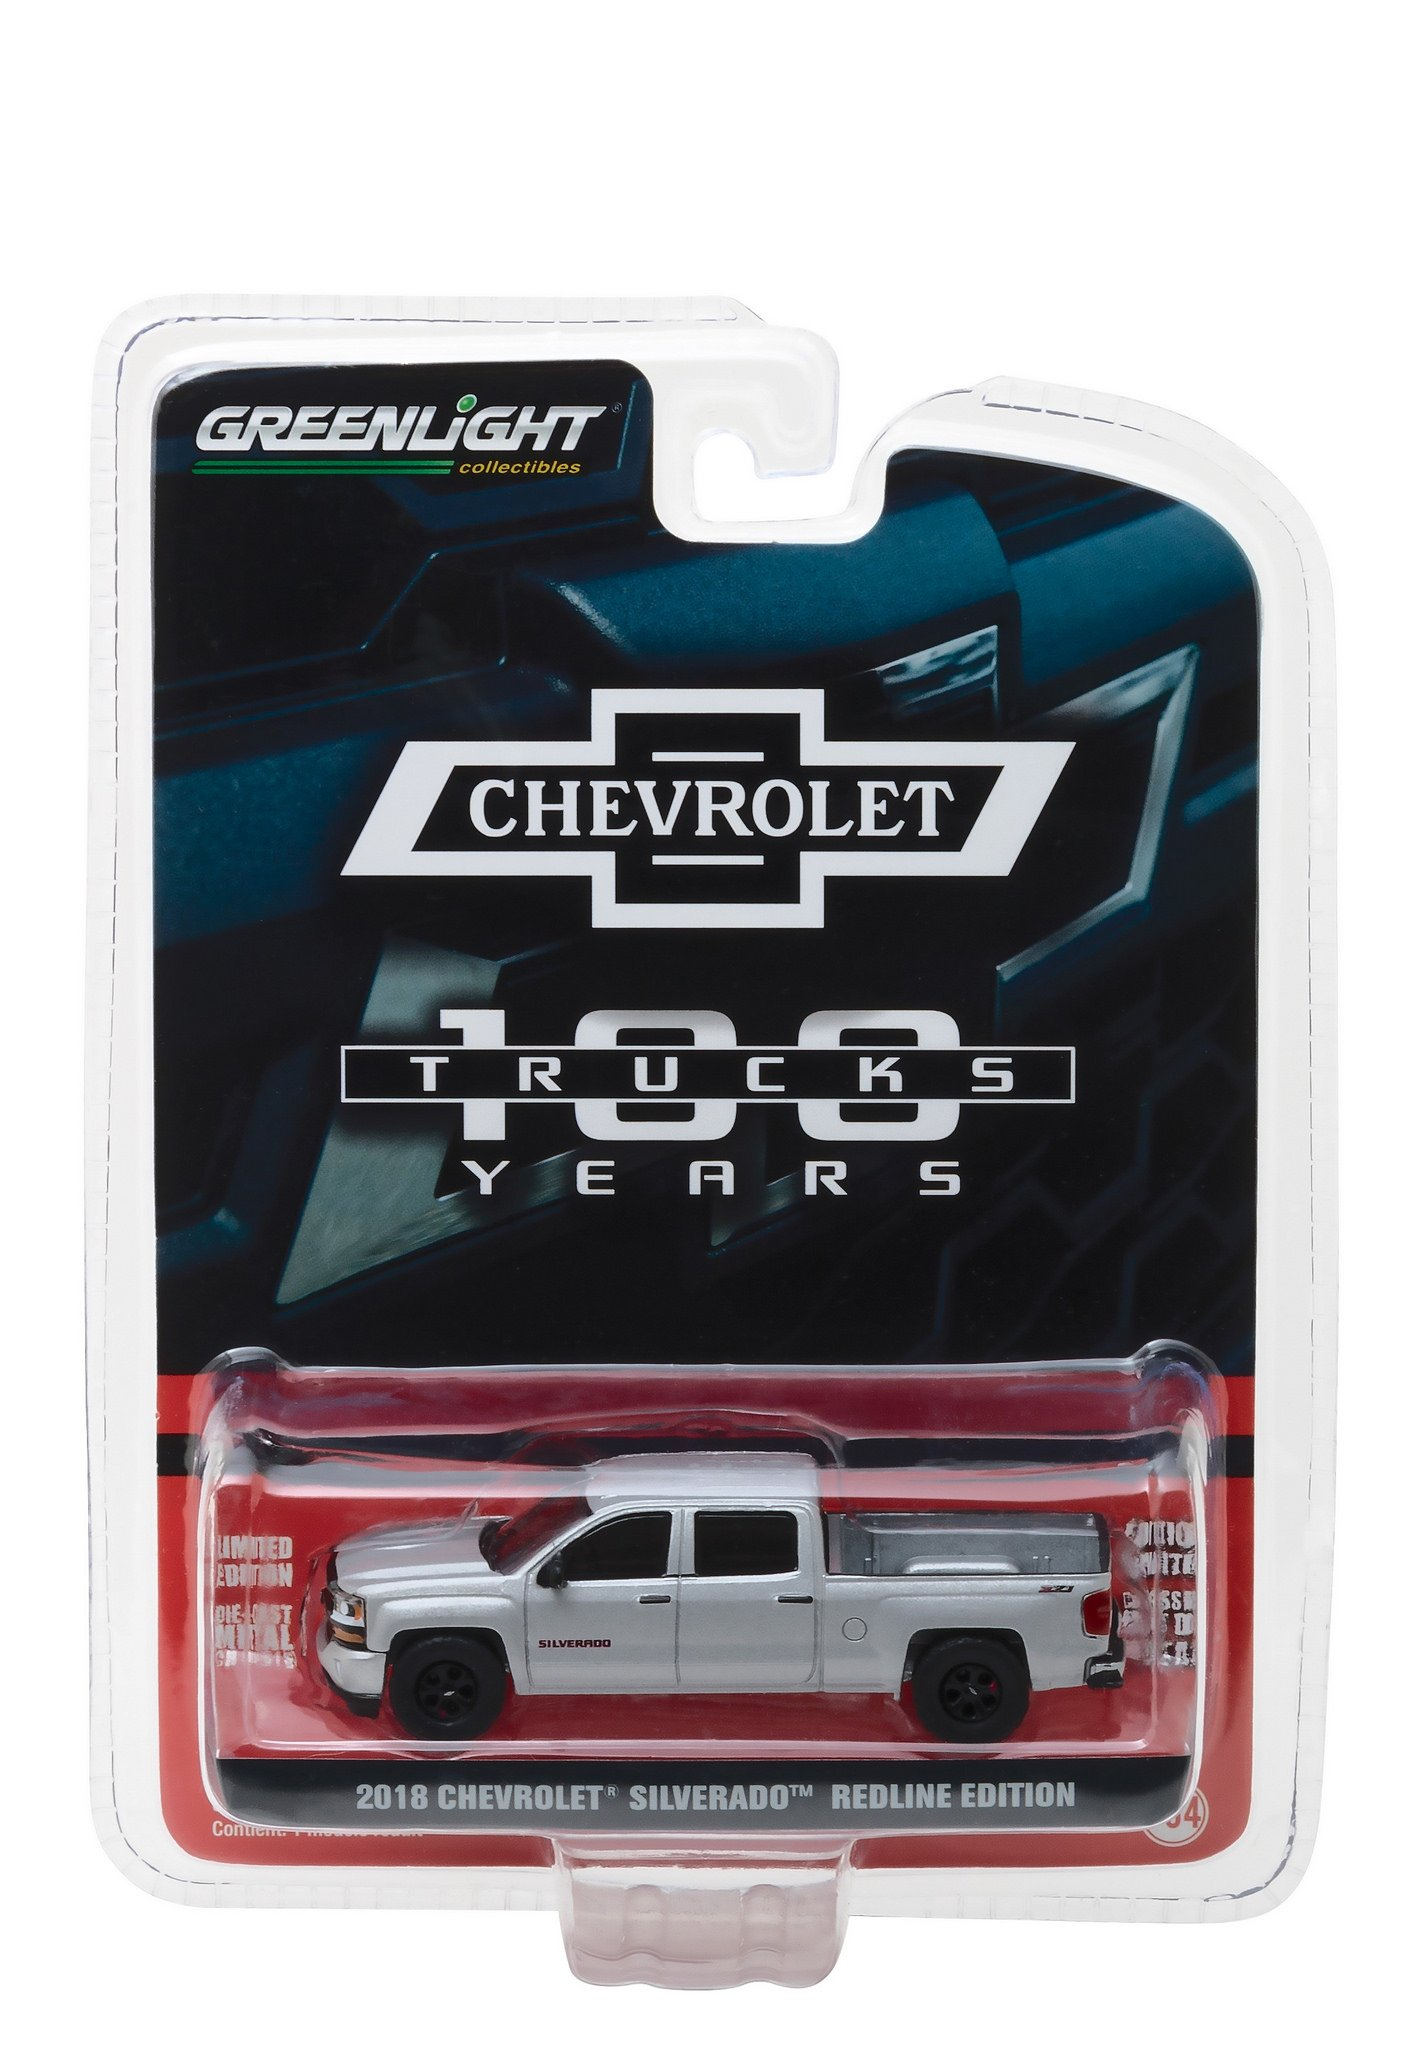 StarSun Depot 2018 Chevrolet Silverado Redline Edition Silver 100th Anniversary of Chevy Trucks Anniversary Collection Series 6 1/64 Model Car by Greenlight